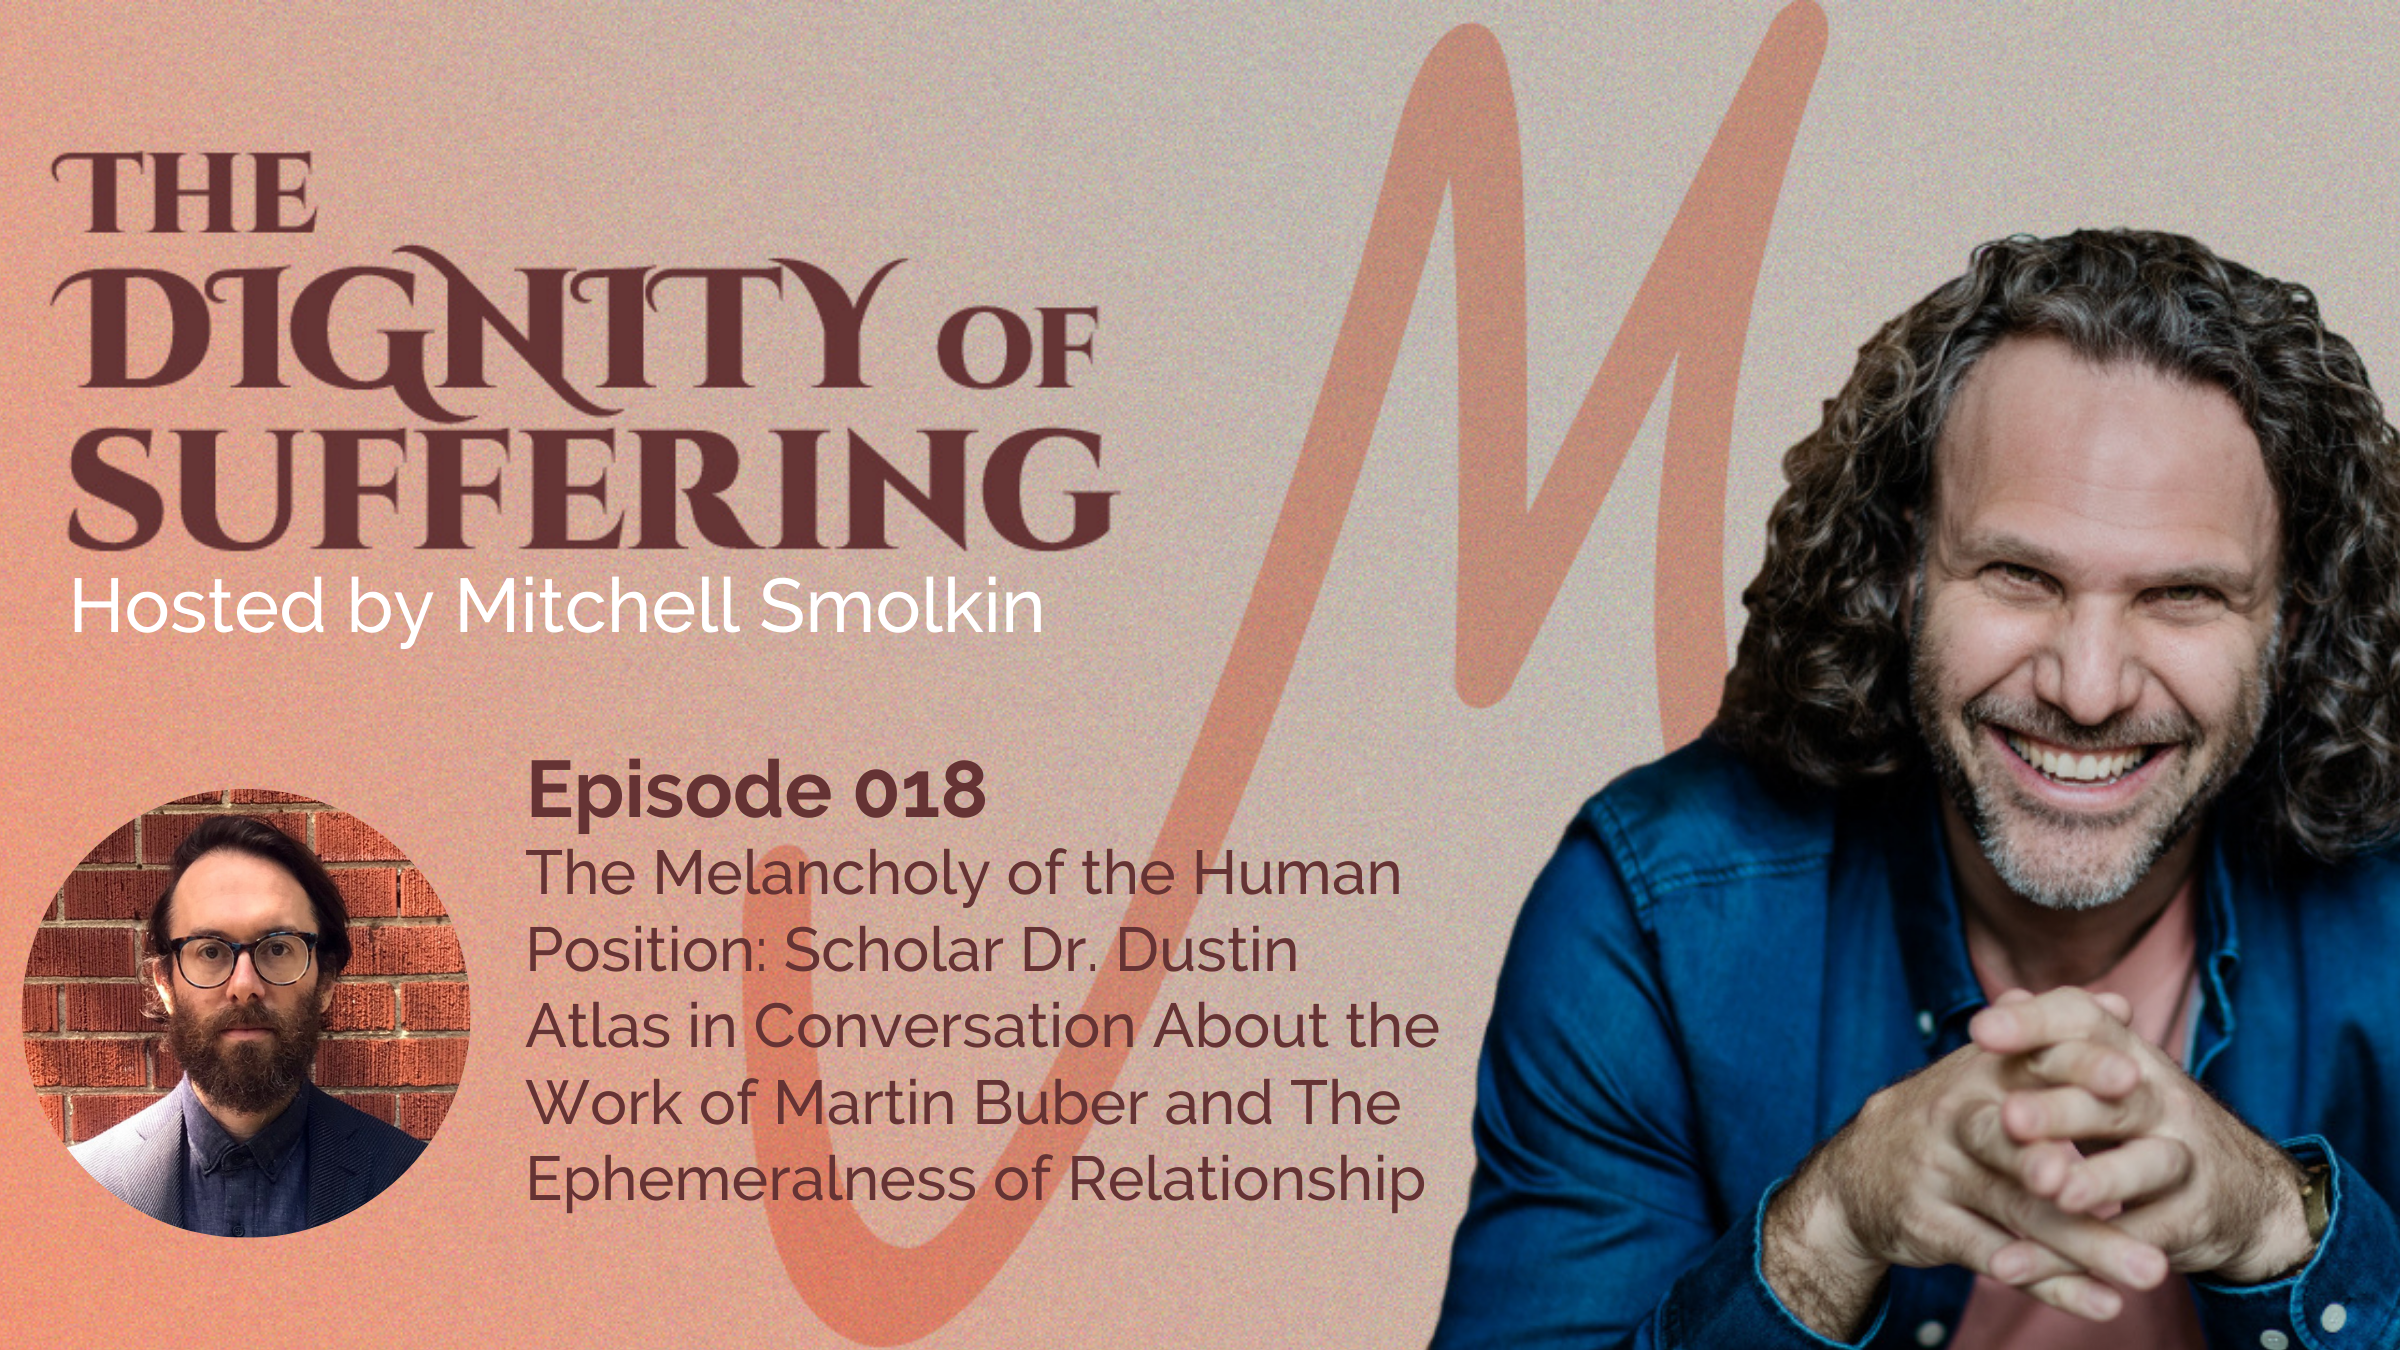 Episode 018: The Melancholy of the Human Position: Scholar Dr. Dustin Atlas in Conversation About the Work of Martin Buber and The Ephemeralness of Relationship